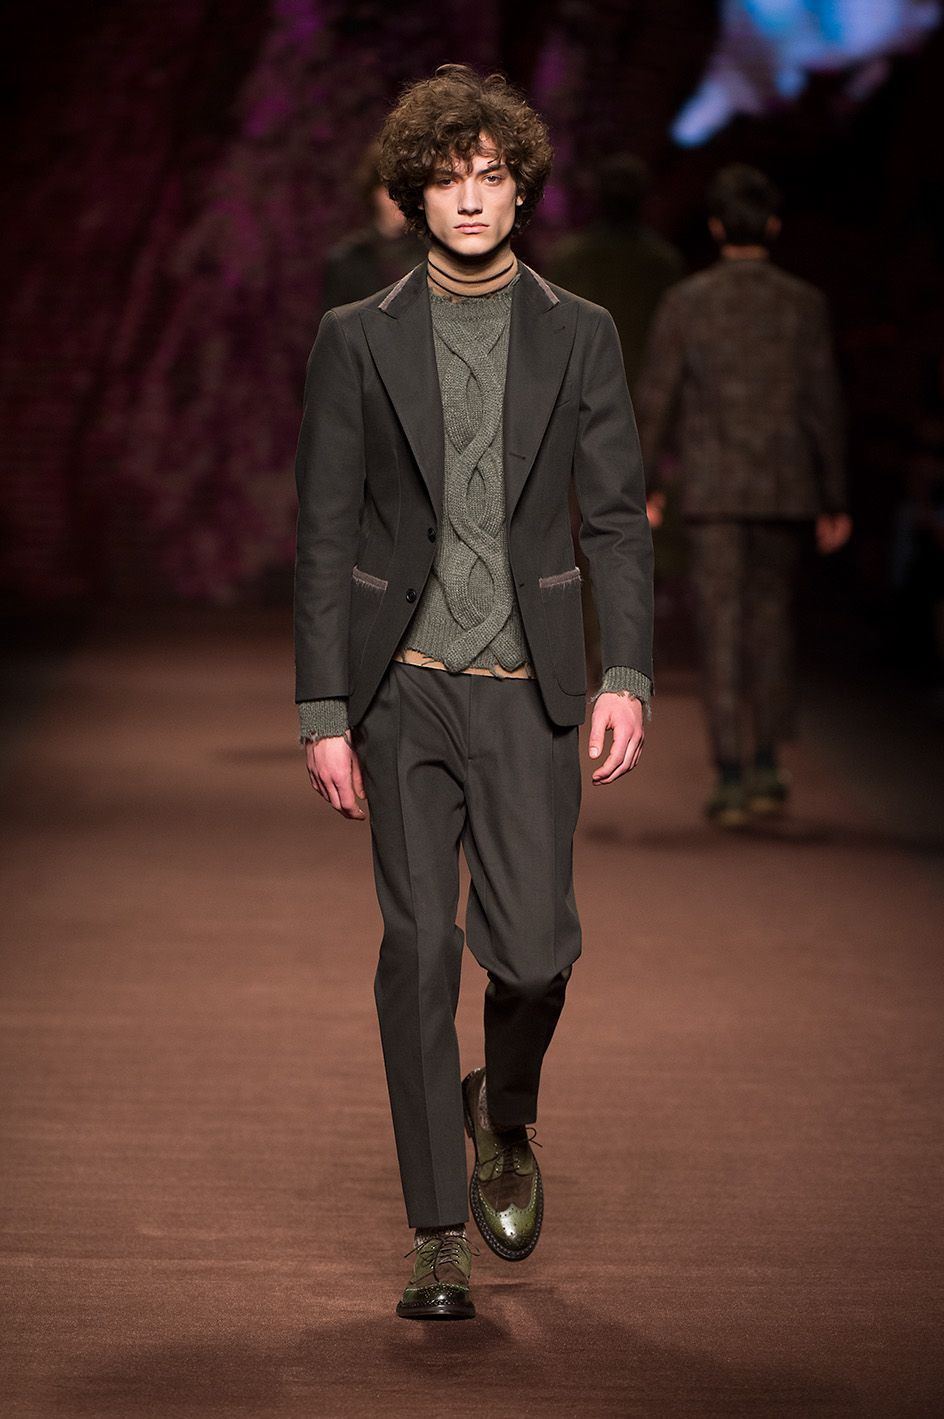 Etro Man Autumn Winter 16-17 Fashion Show  Discover more: bit.ly/1n7d6v2